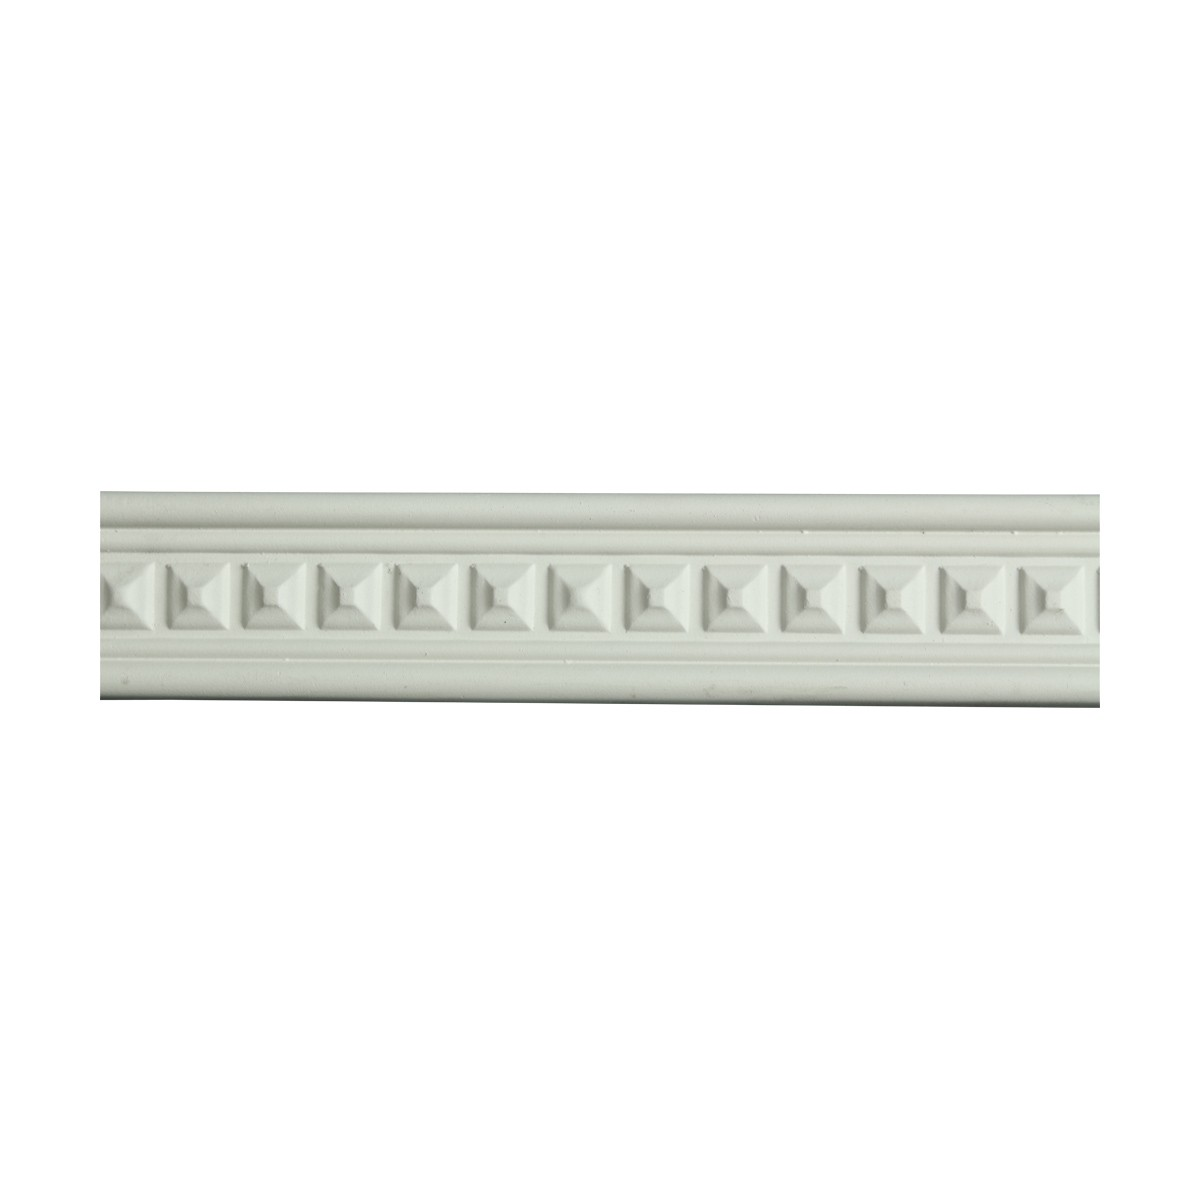 Renovators Supply Crown Molding White Urethane Townsend Ornate Design 6 Pieces Totaling 570 Length White PrePrimed Urethane Crown Cornice Molding Cornice Crown Home Depot Ekena Millwork Molding Wall Ceiling Corner Cornice Crown Cove Molding